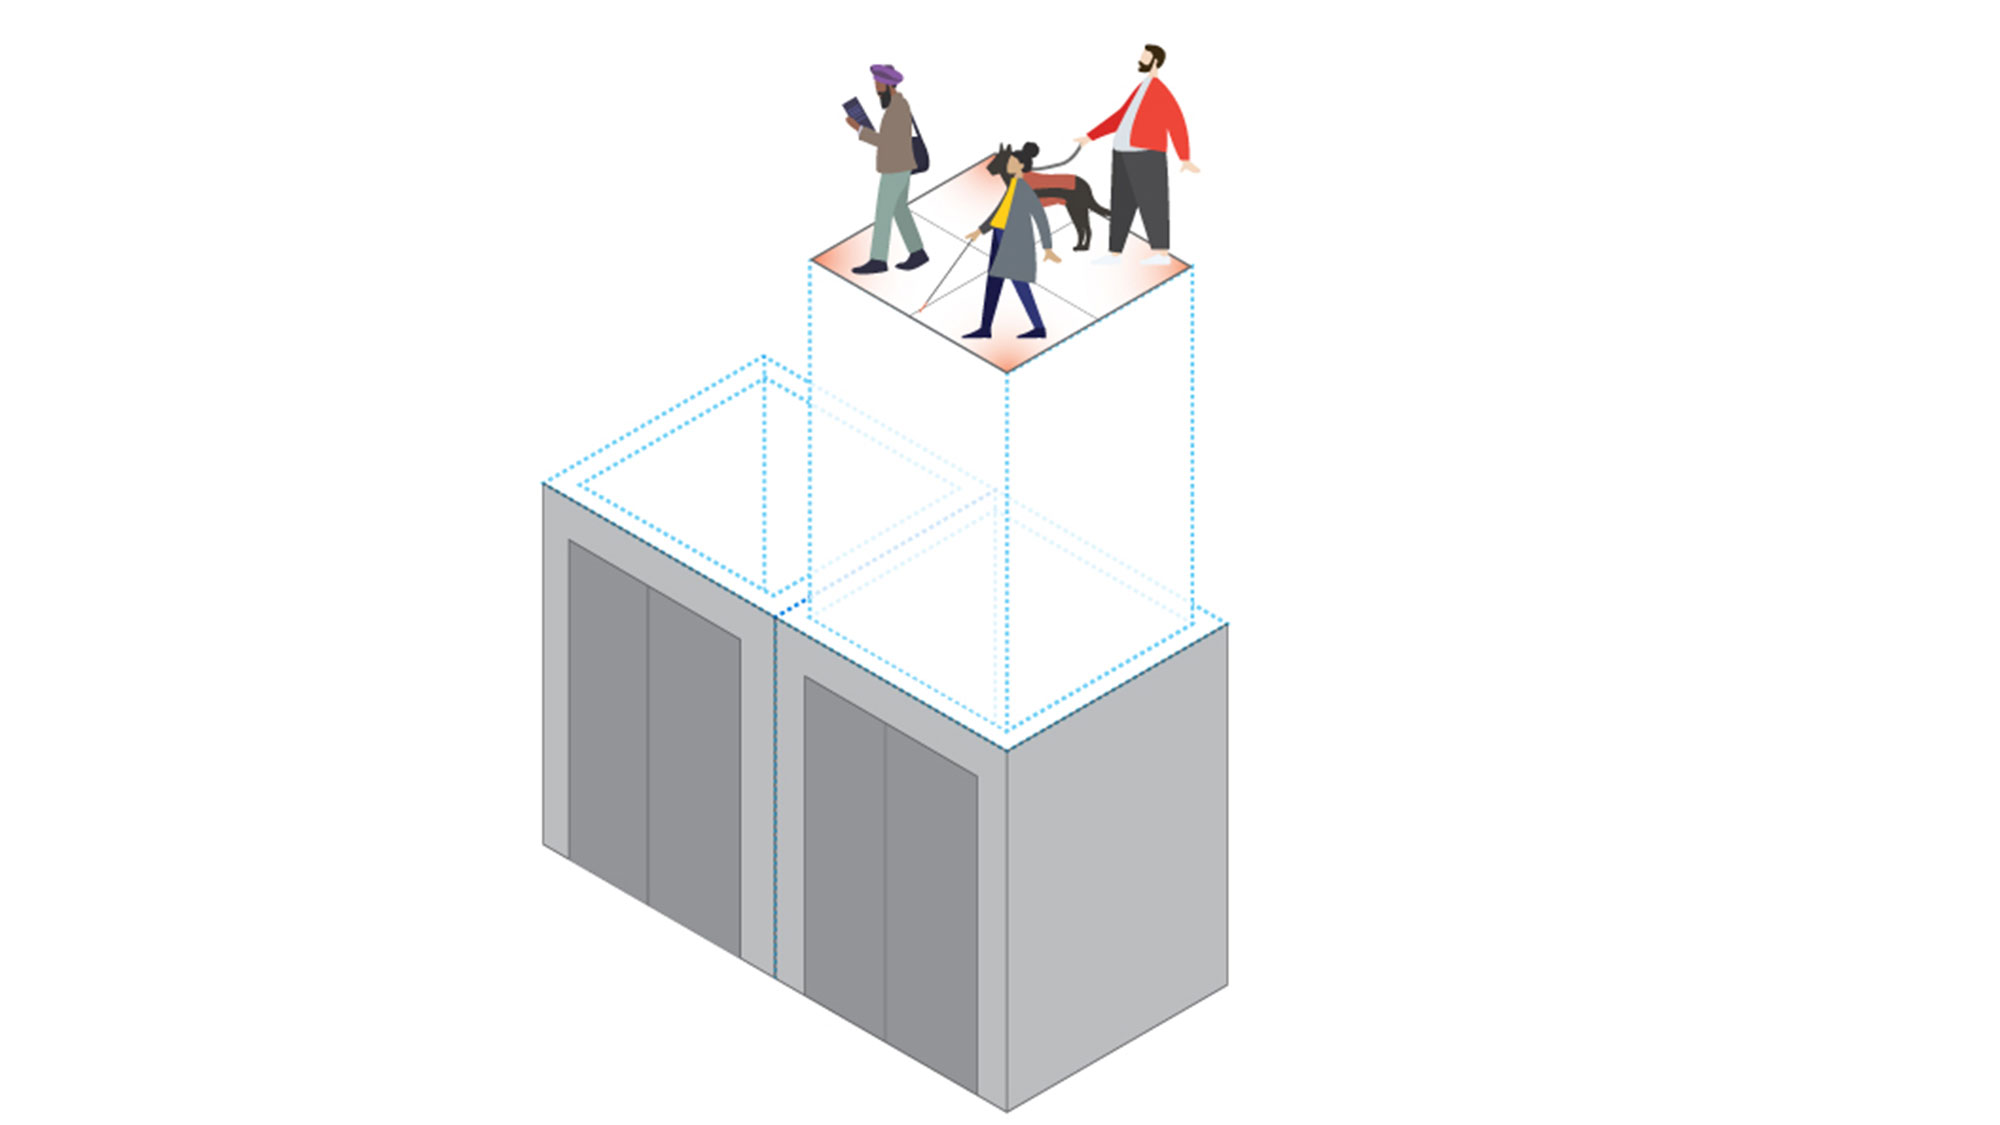 A graphic illustration showing two elevators showing people physically distanced within the elevator.